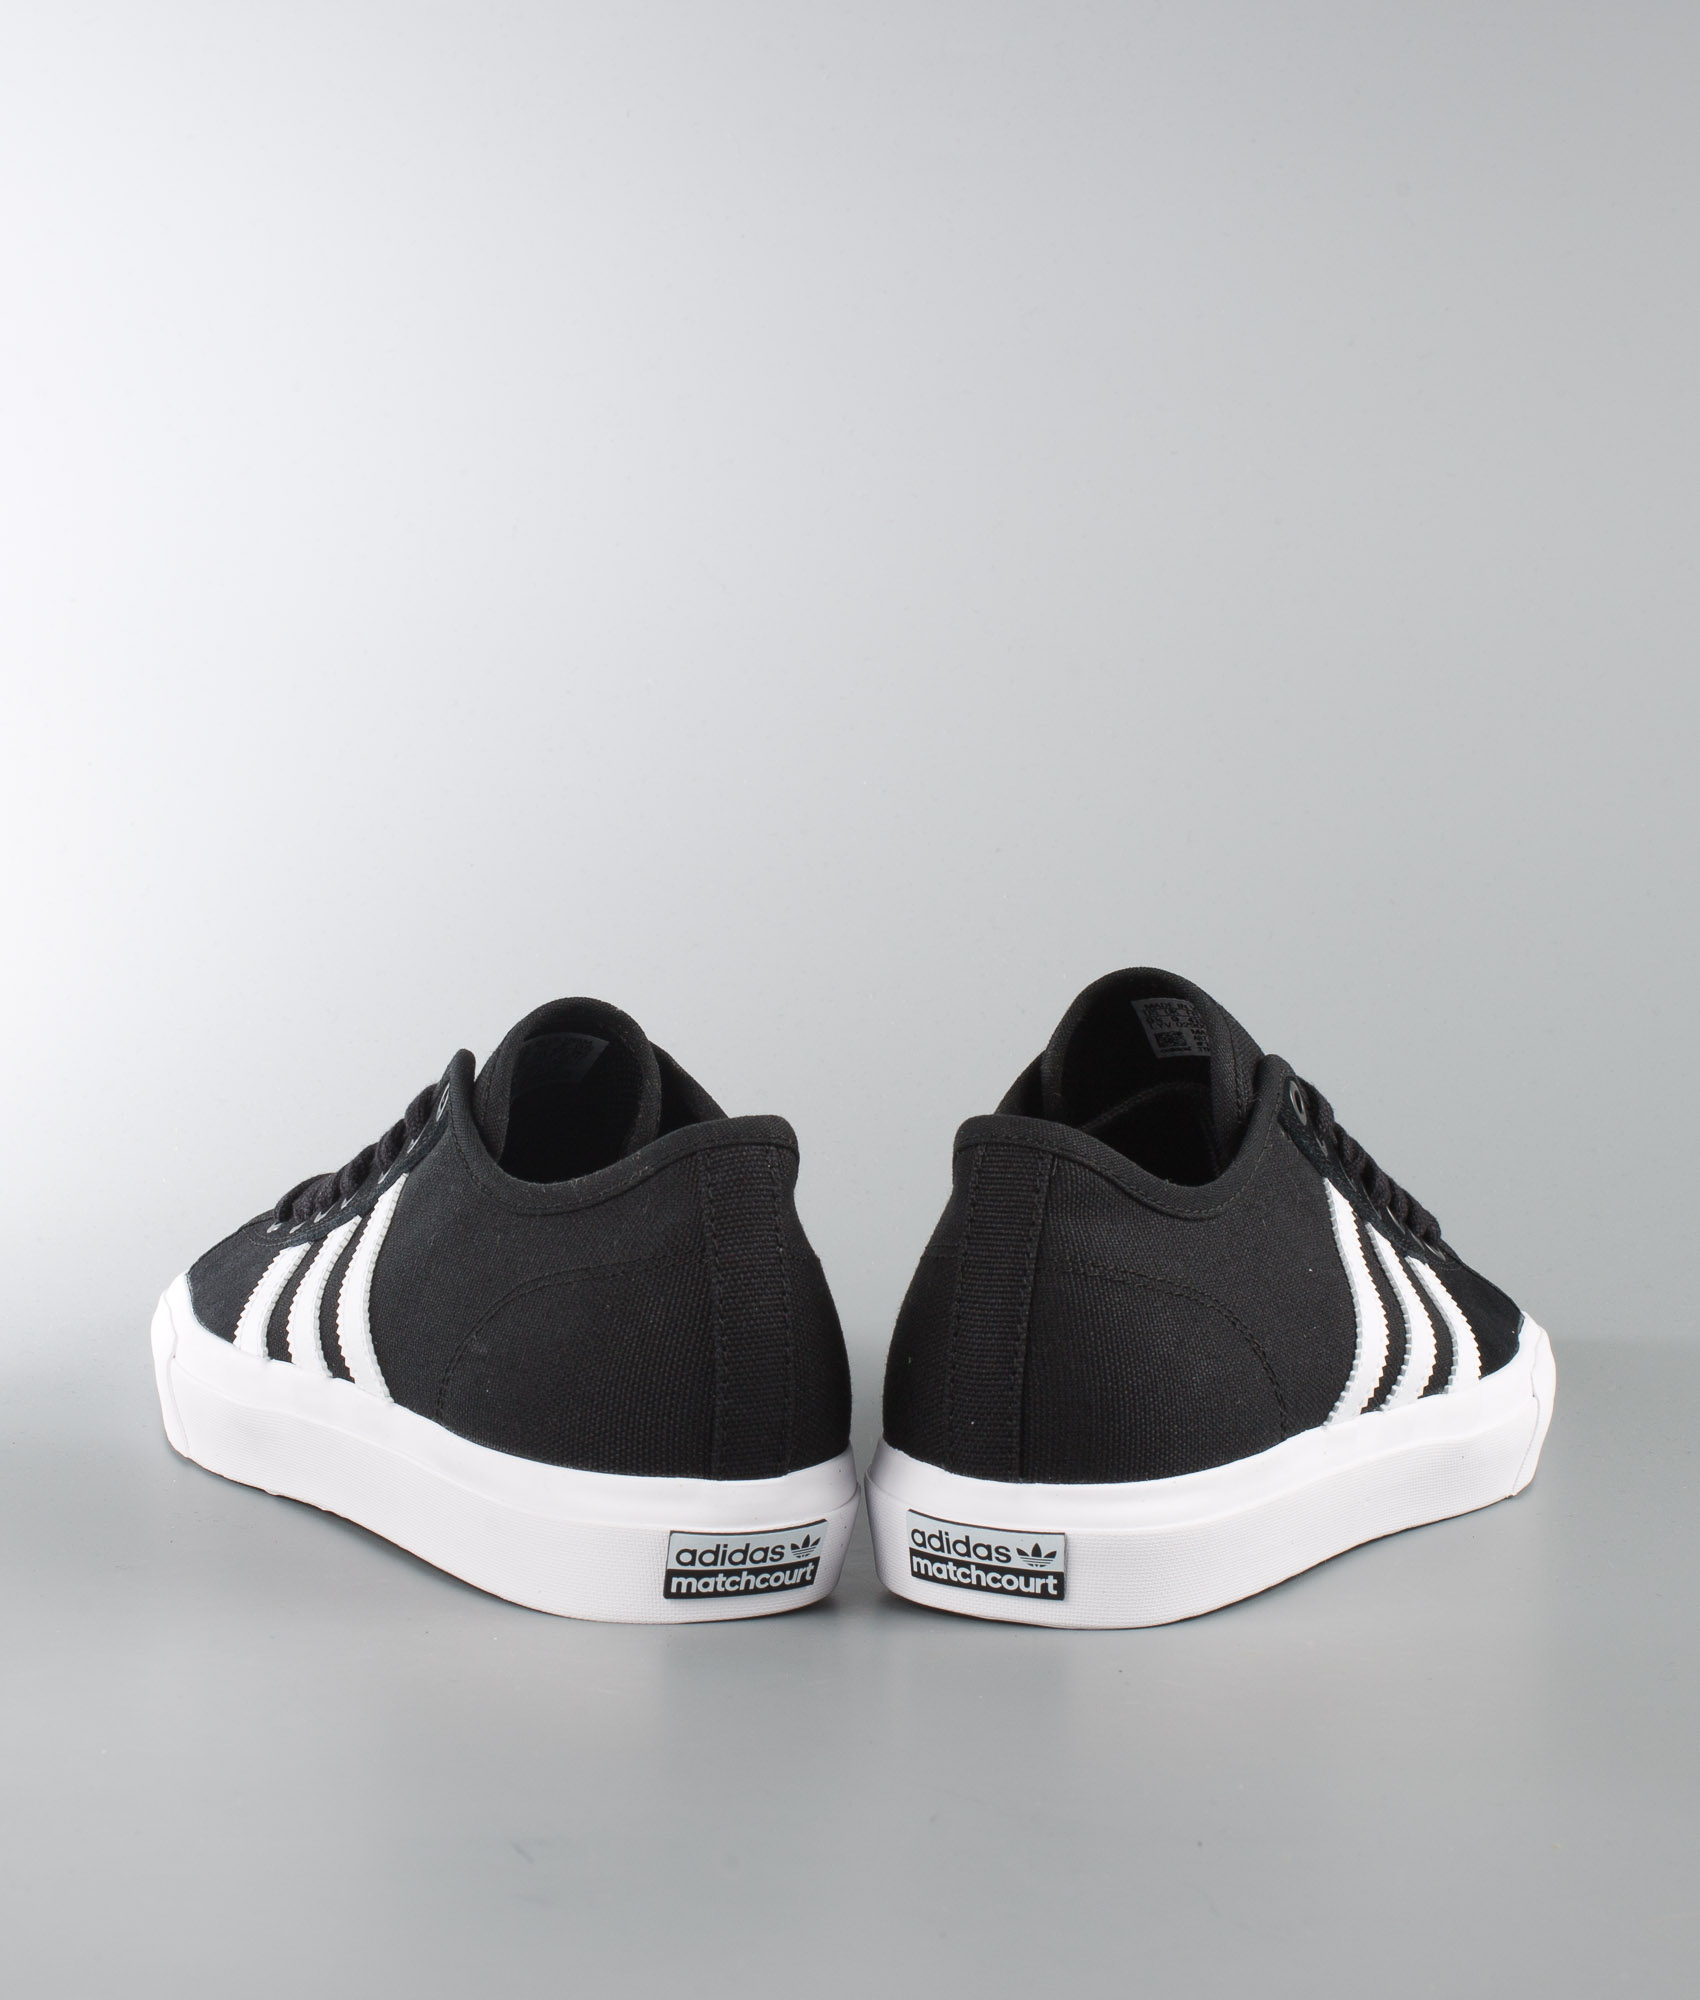 Adidas Matchcourt Shoes rea